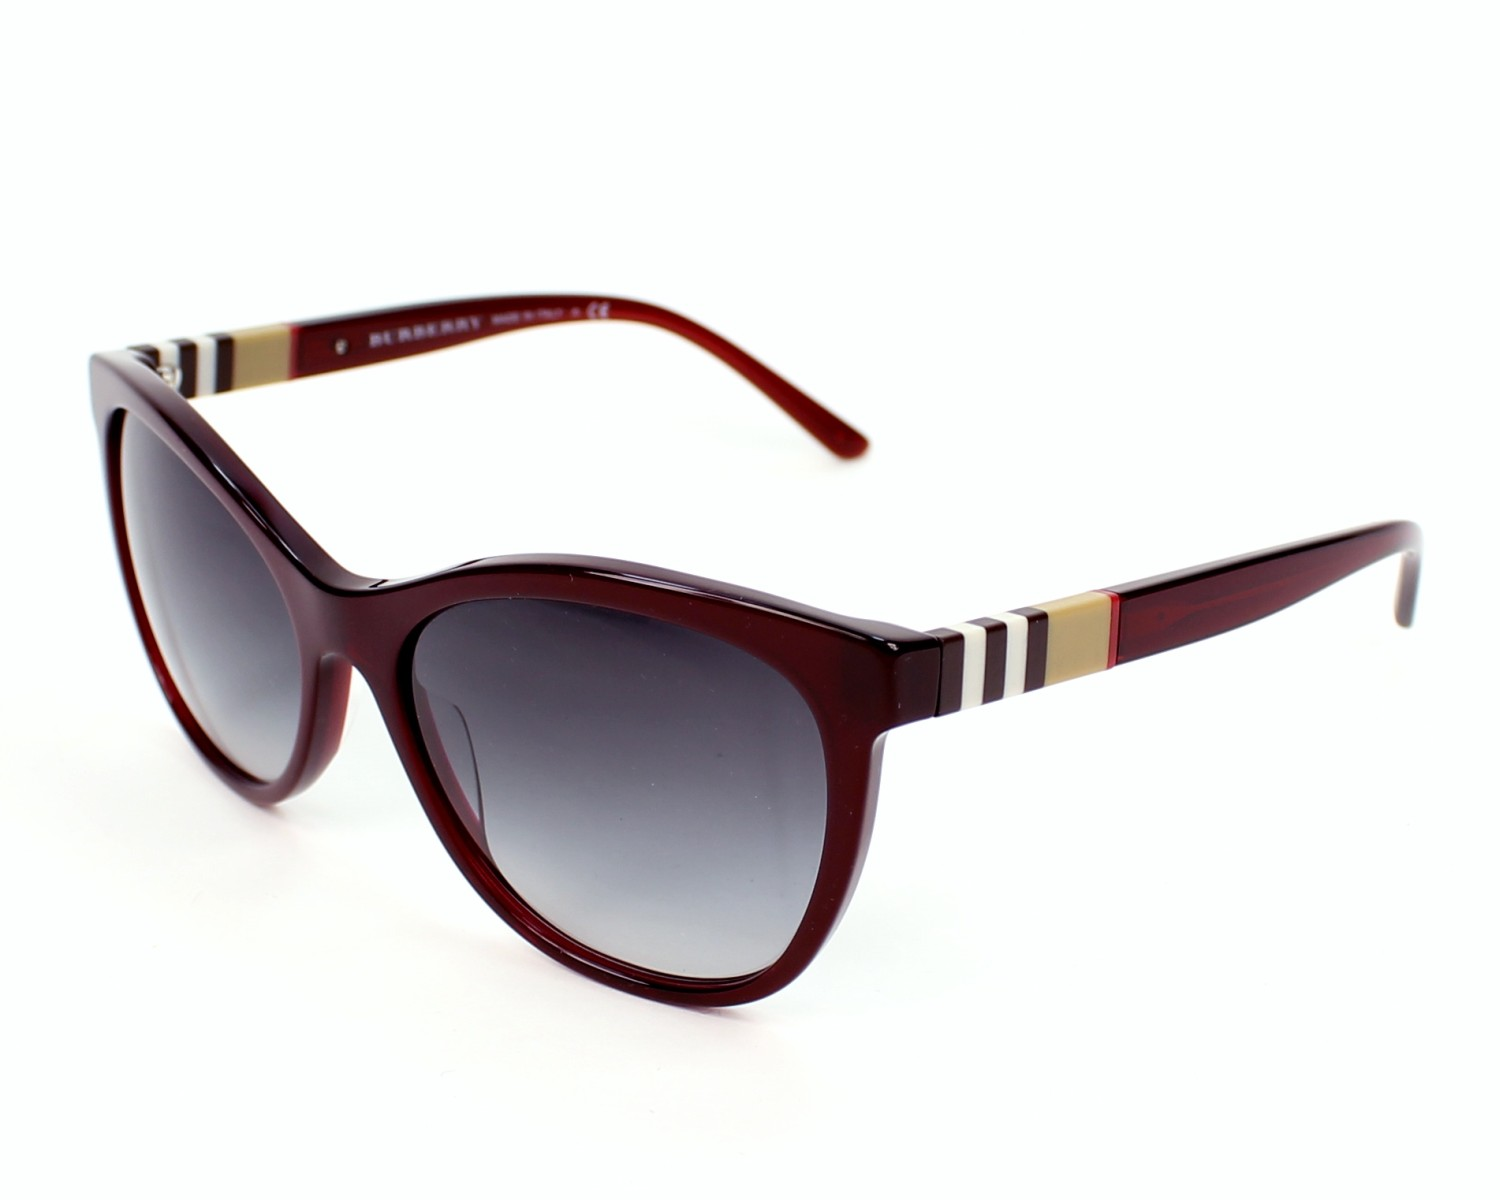 3bb33f36f65 burberry homme lunettes soleil